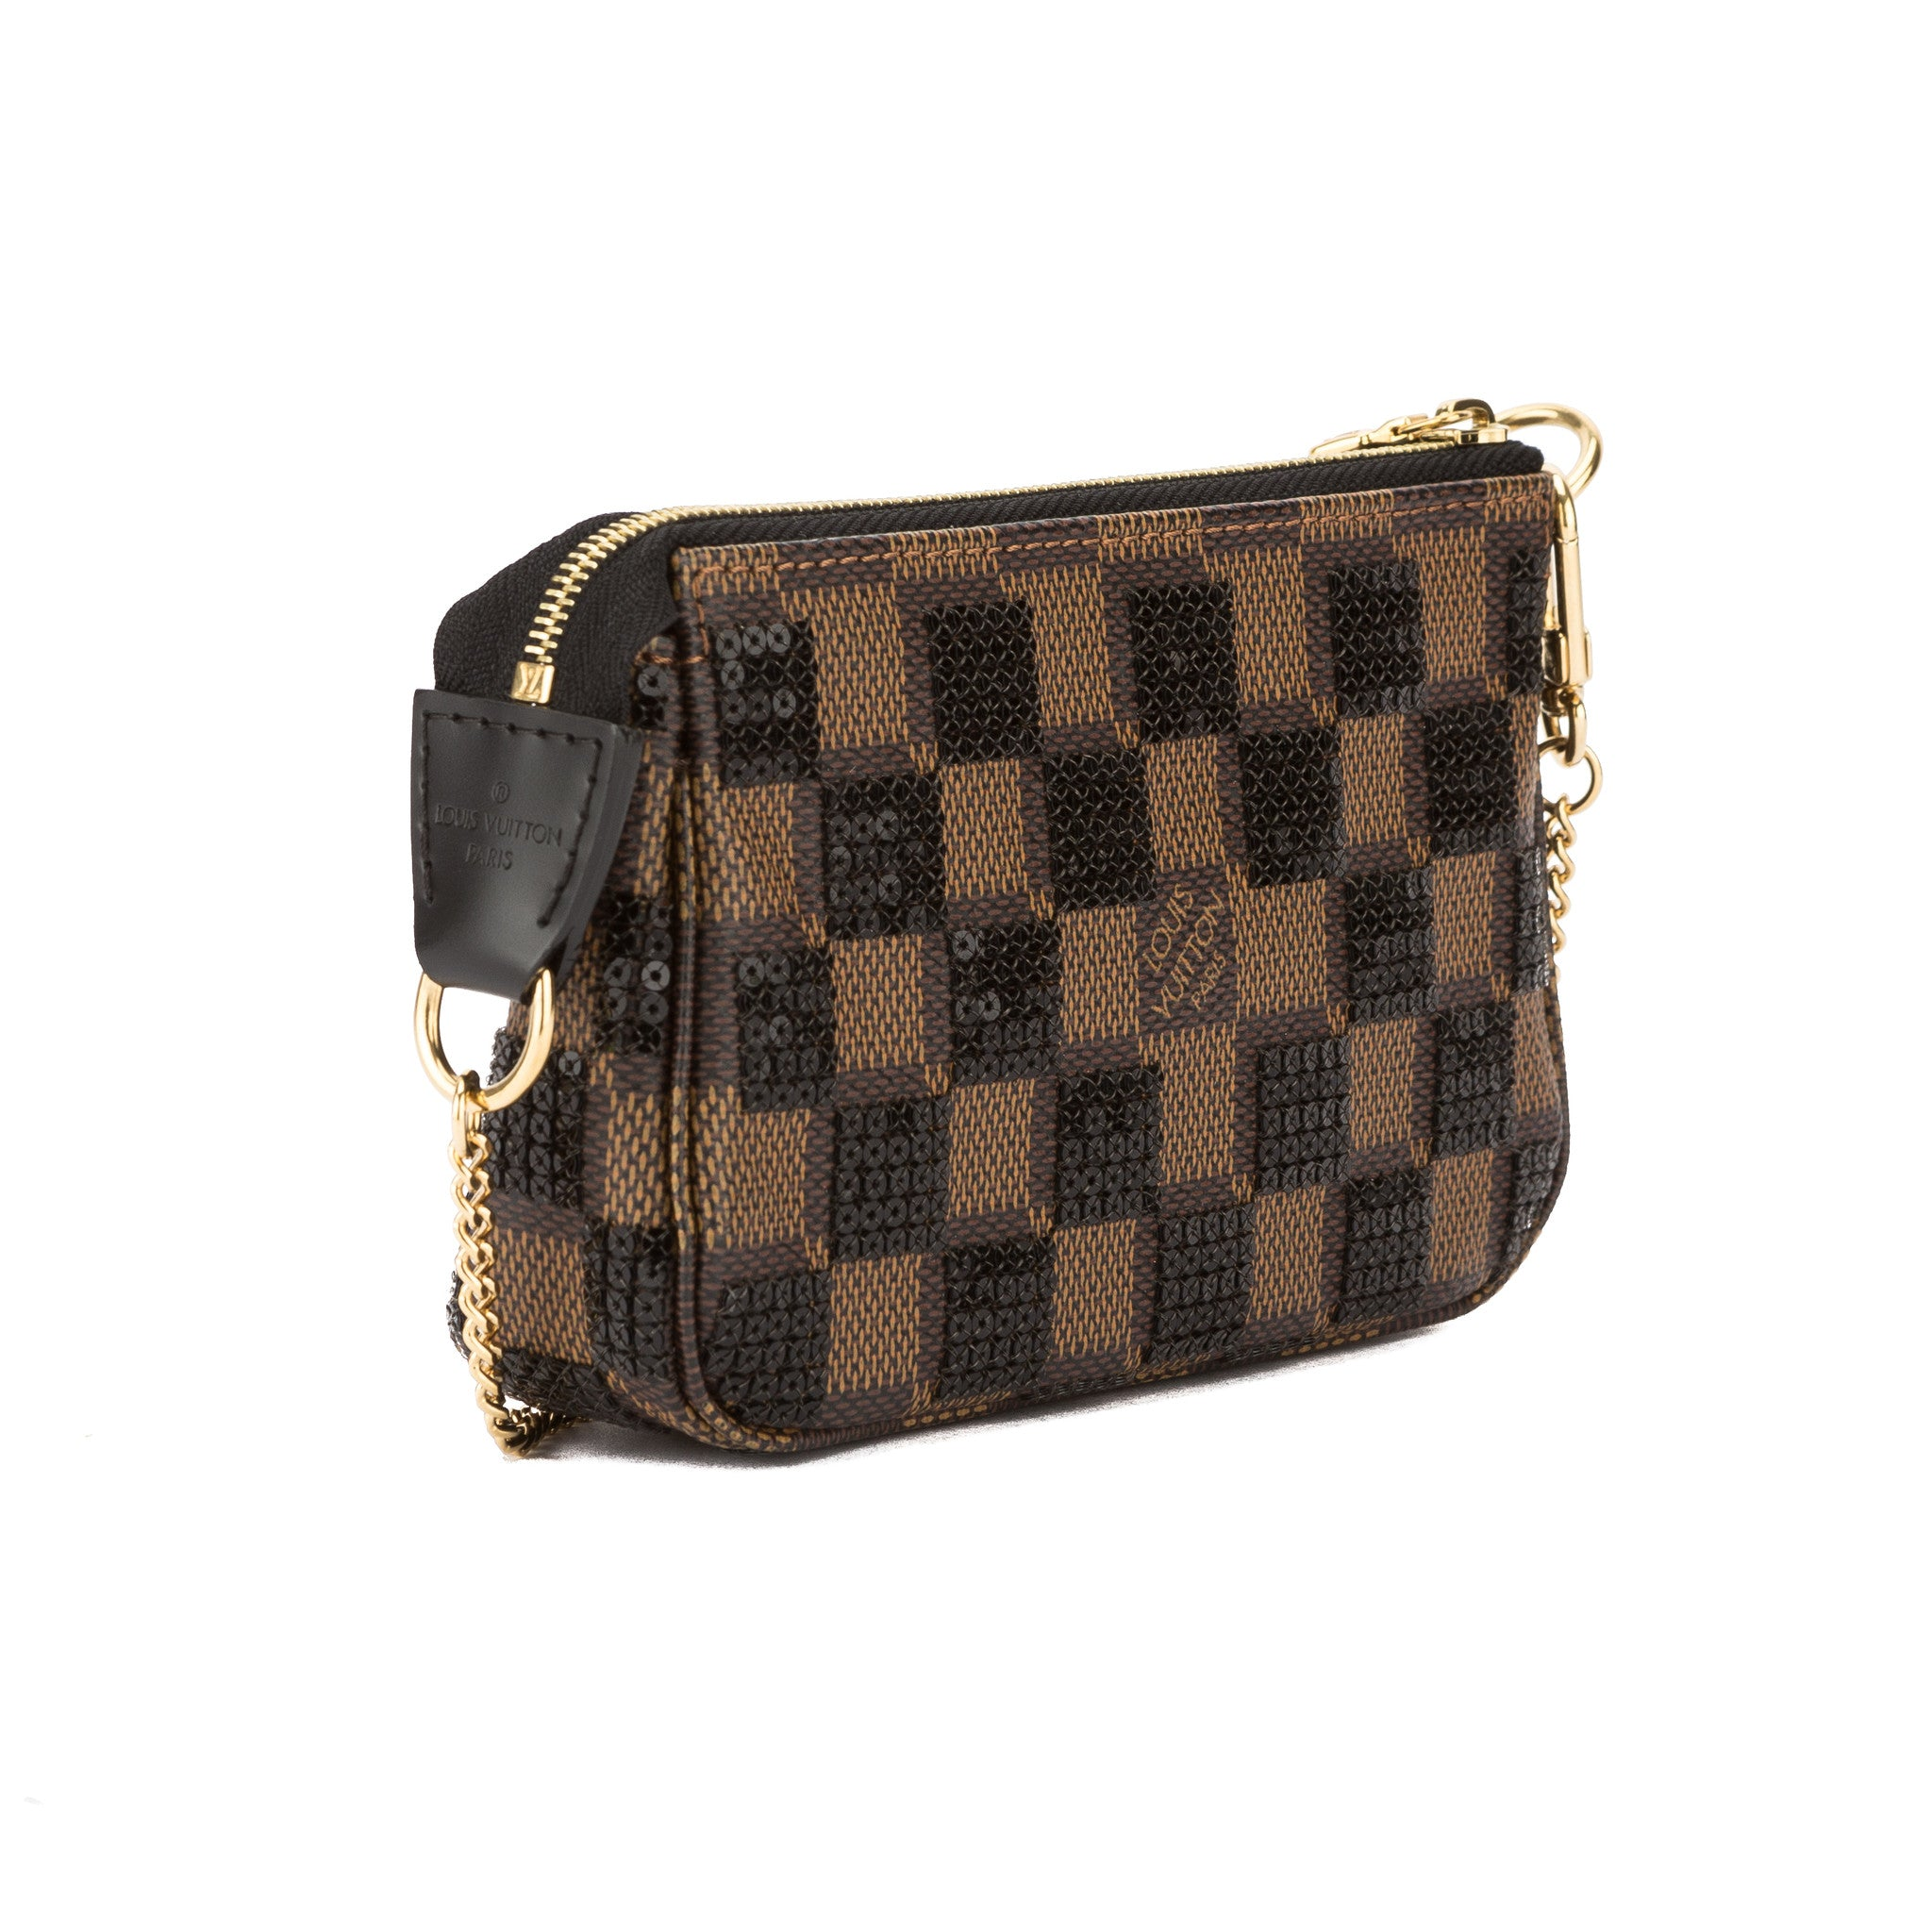 124ddd9d7892 Louis Vuitton Black Damier Pailettes Mini Pochette Accessoires Bag Pre Owned